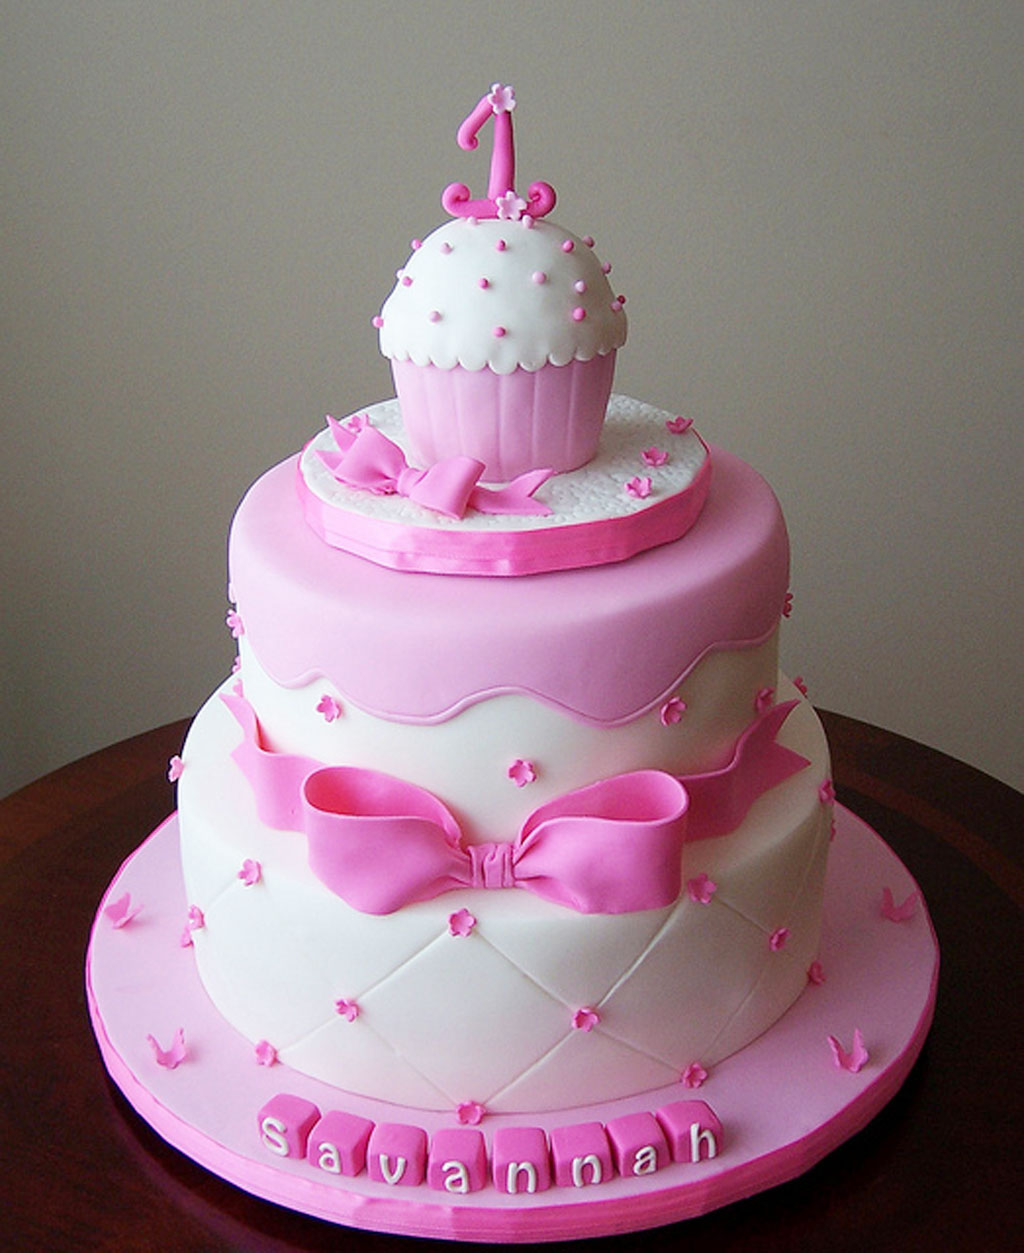 birthday cakes for girls images pictures wallpapers and. Black Bedroom Furniture Sets. Home Design Ideas